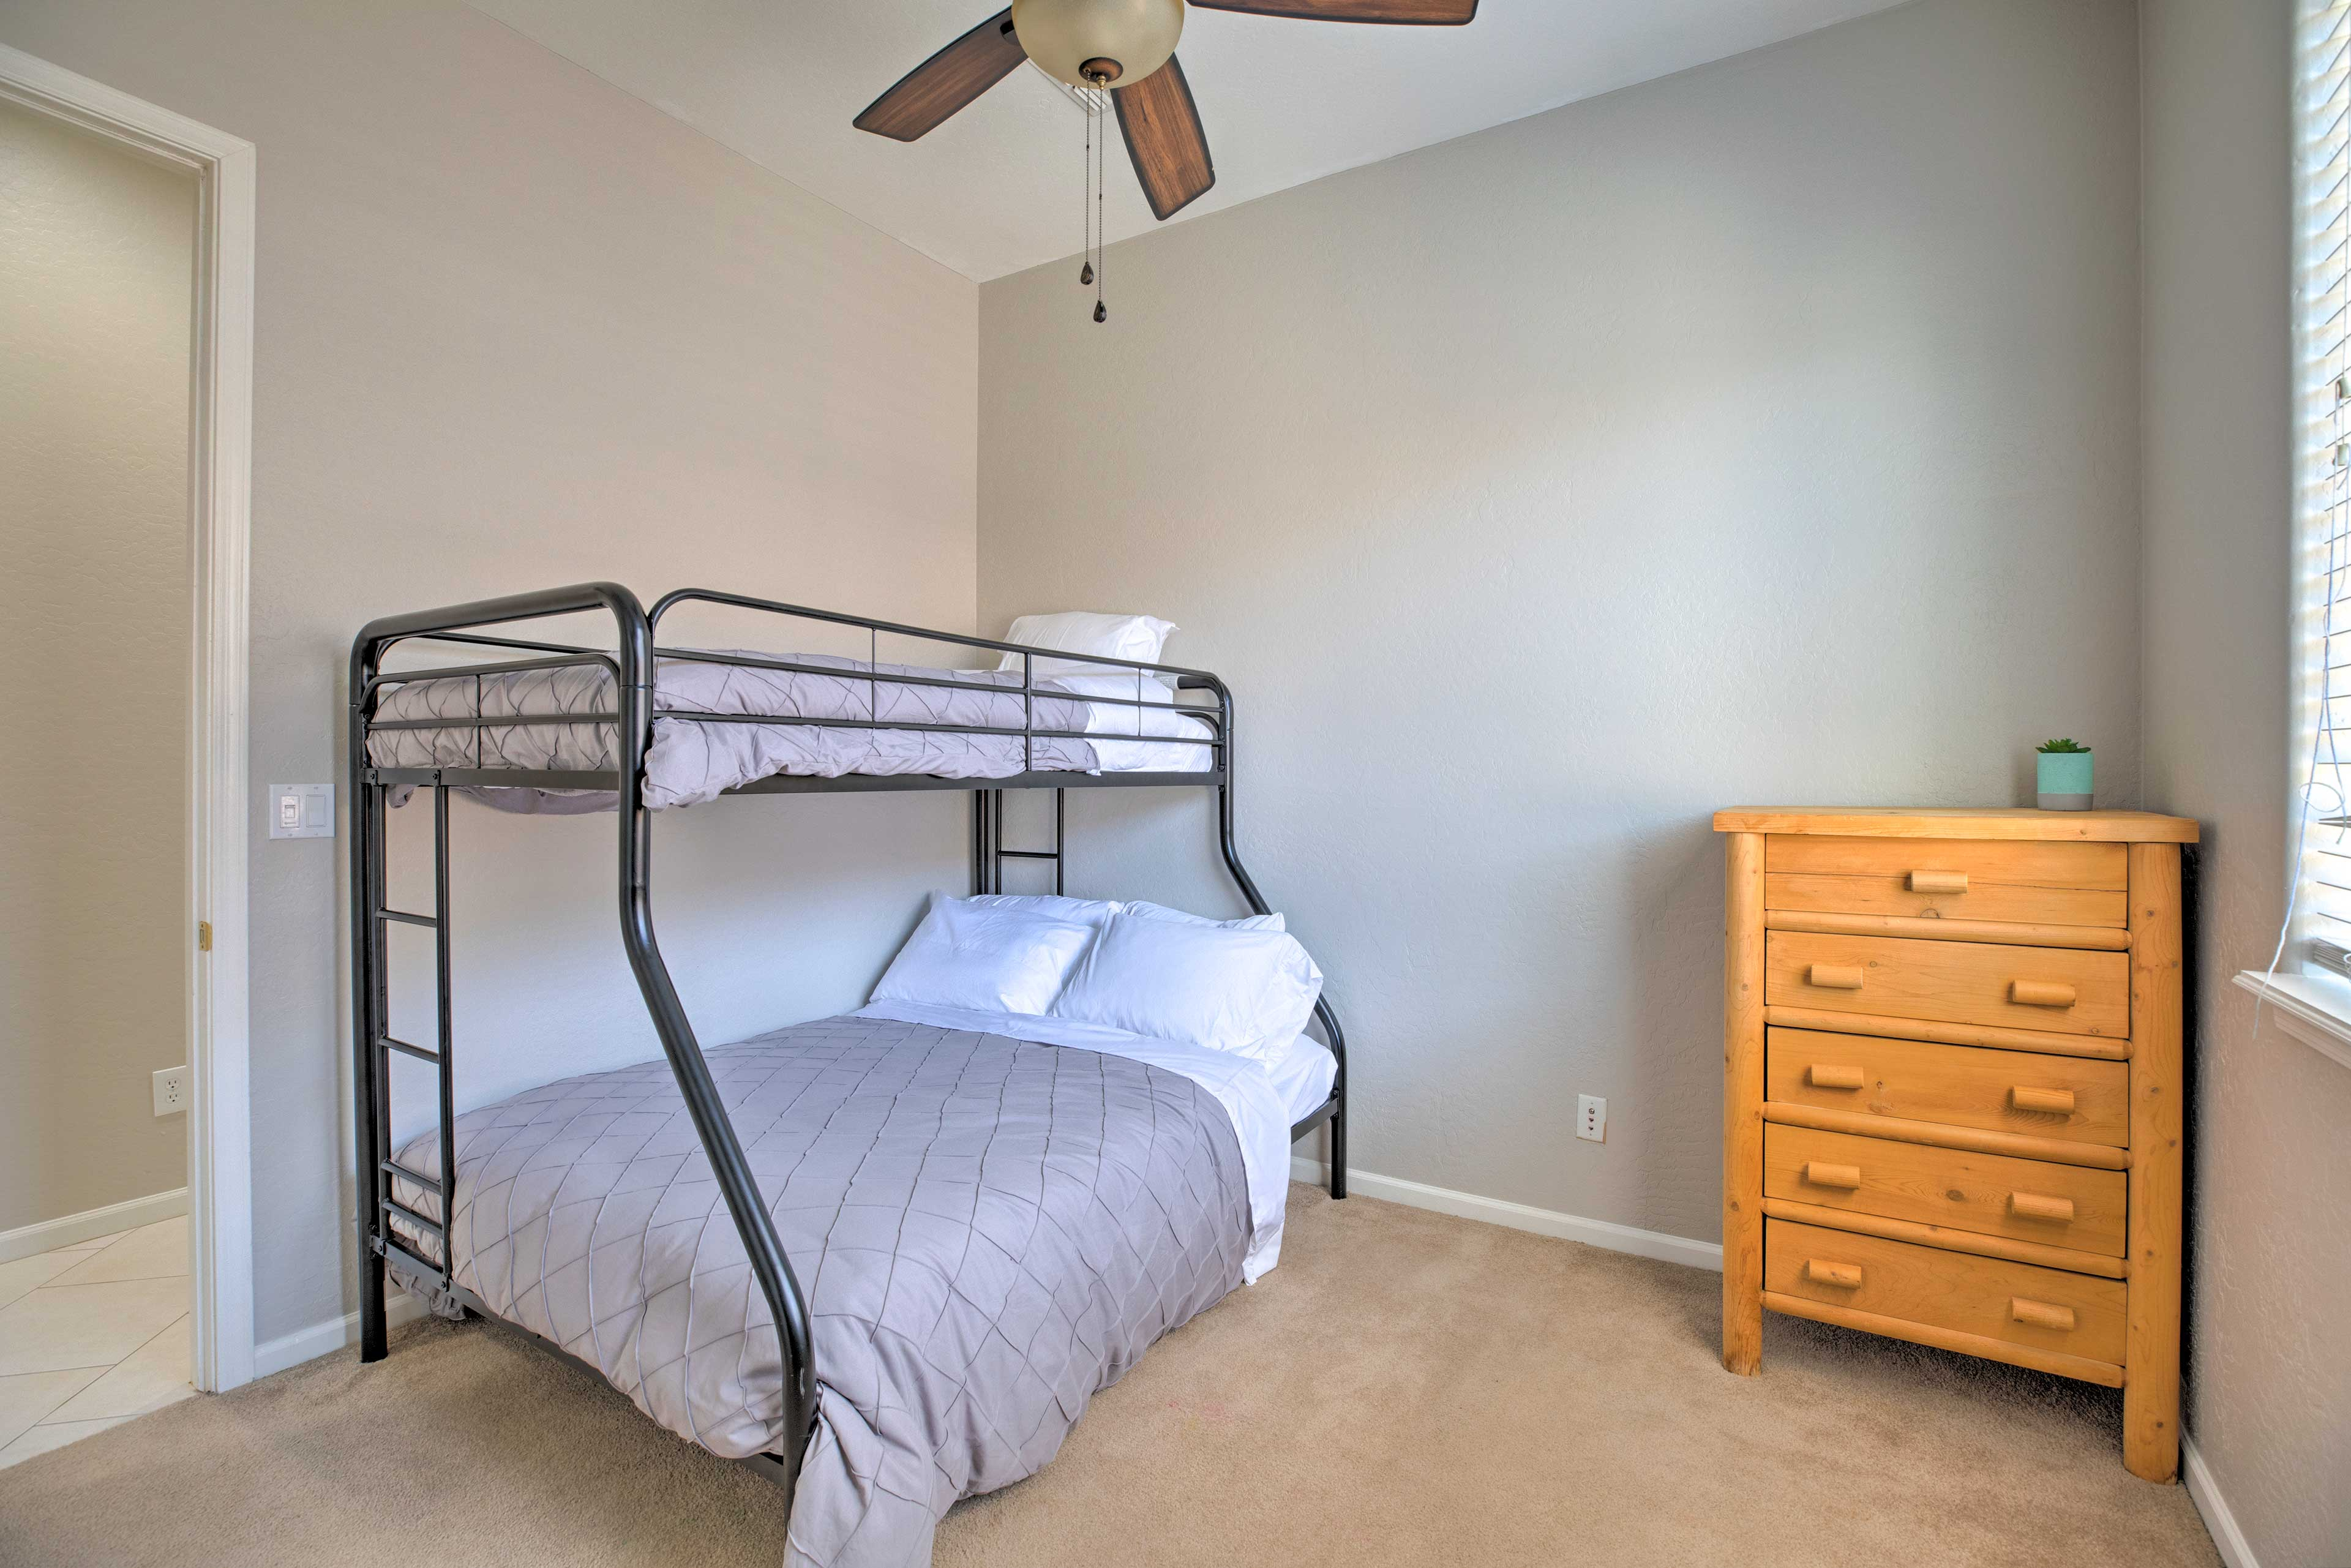 The fourth bedroom features a twin-over-full bunk bed.